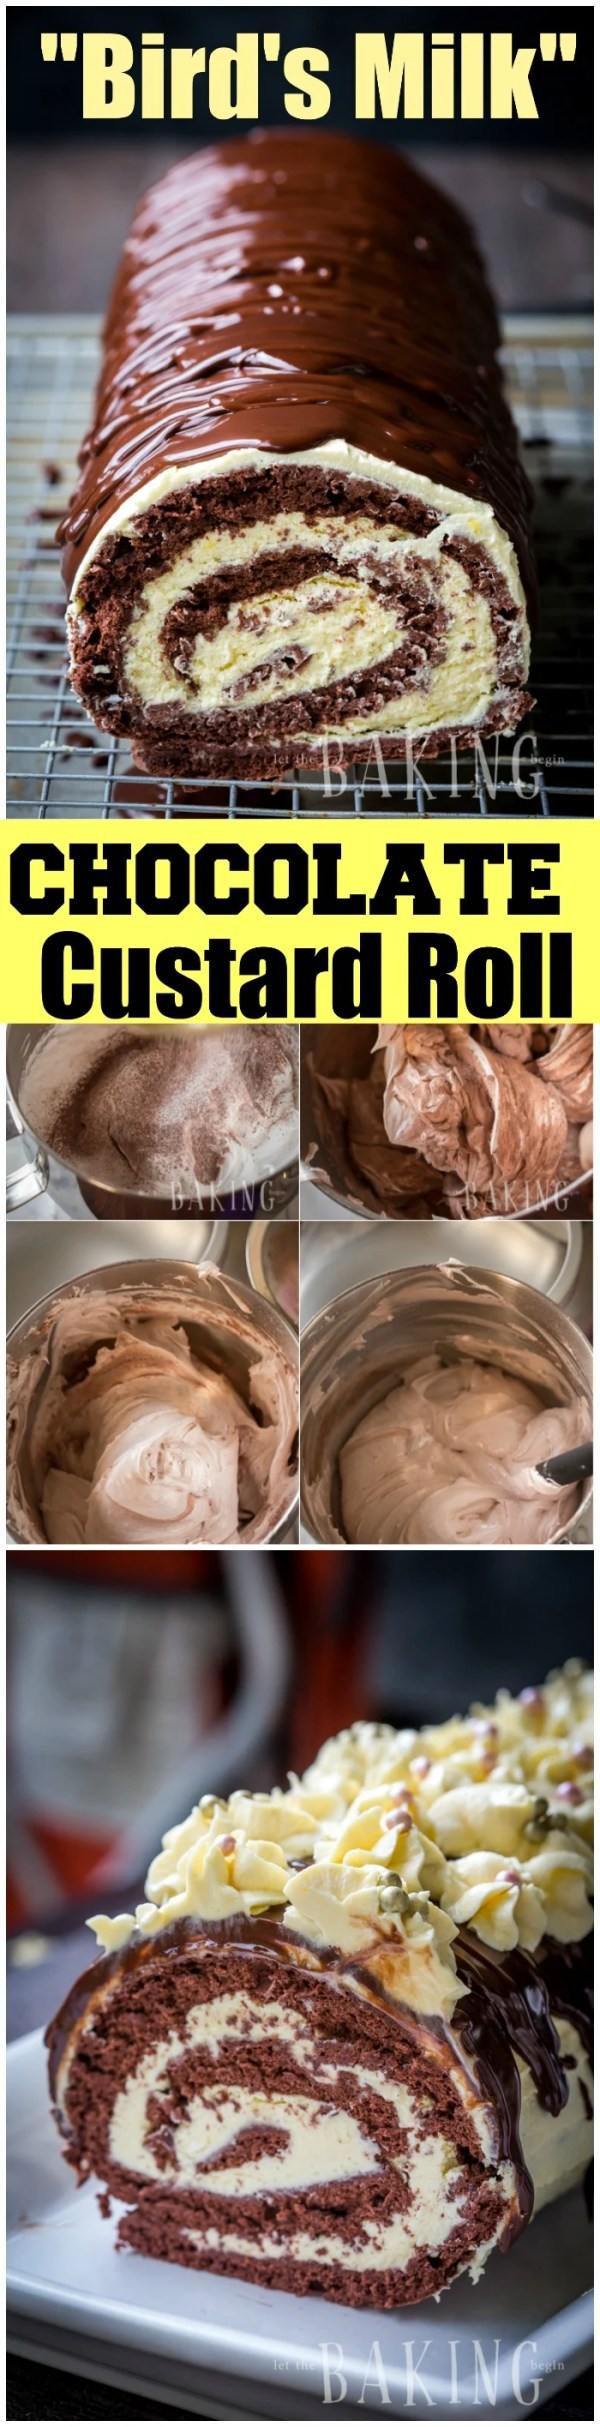 Chocolate Custard Roll - {Birds Milk Roll} - A foolproof recipe with photo step by step instructions | Let the Baking Begin!